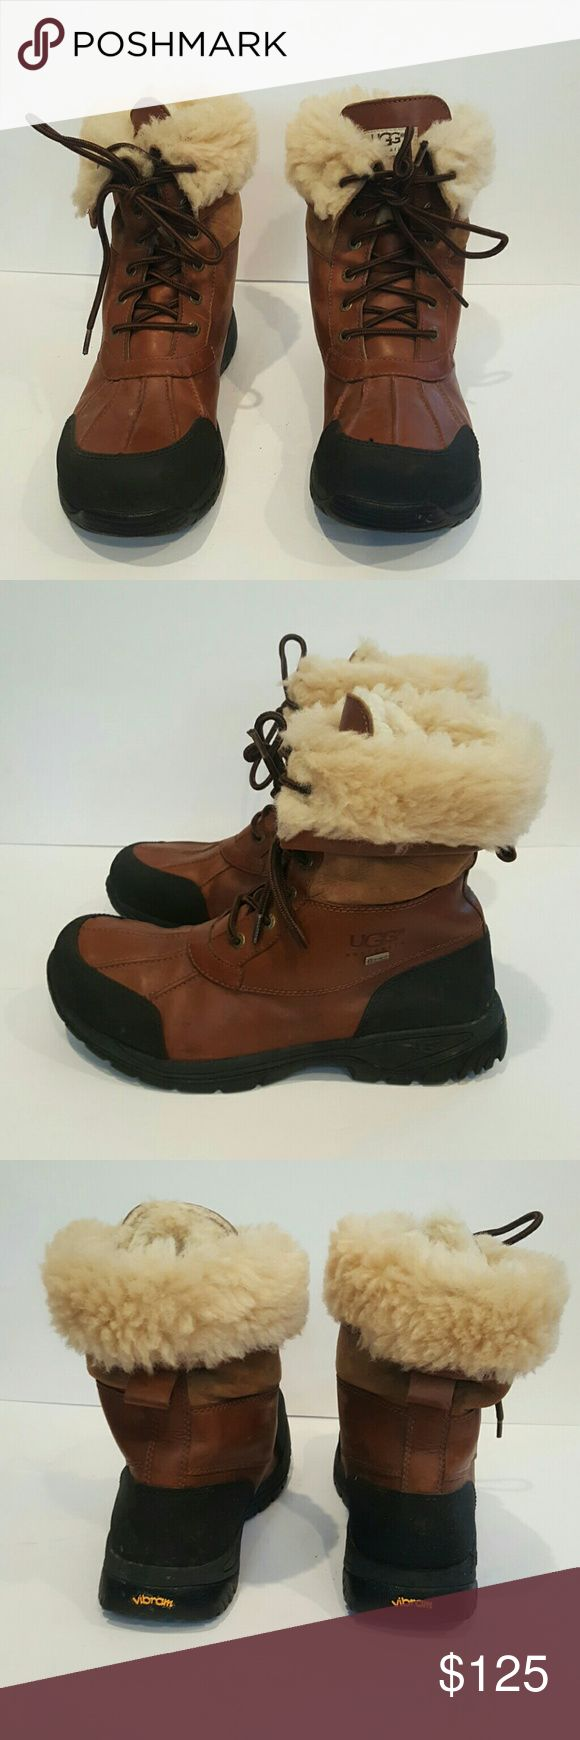 UGG FOR MEN BUTTE SIZE 11 GREAT SHAPE UGG FOR MEN SIZE 11 BROWN LEATHER WINTER BOOTS WATERPROOF VIBRAM EVENT GREAT SHAPE UGG Shoes Rain & Snow Boots